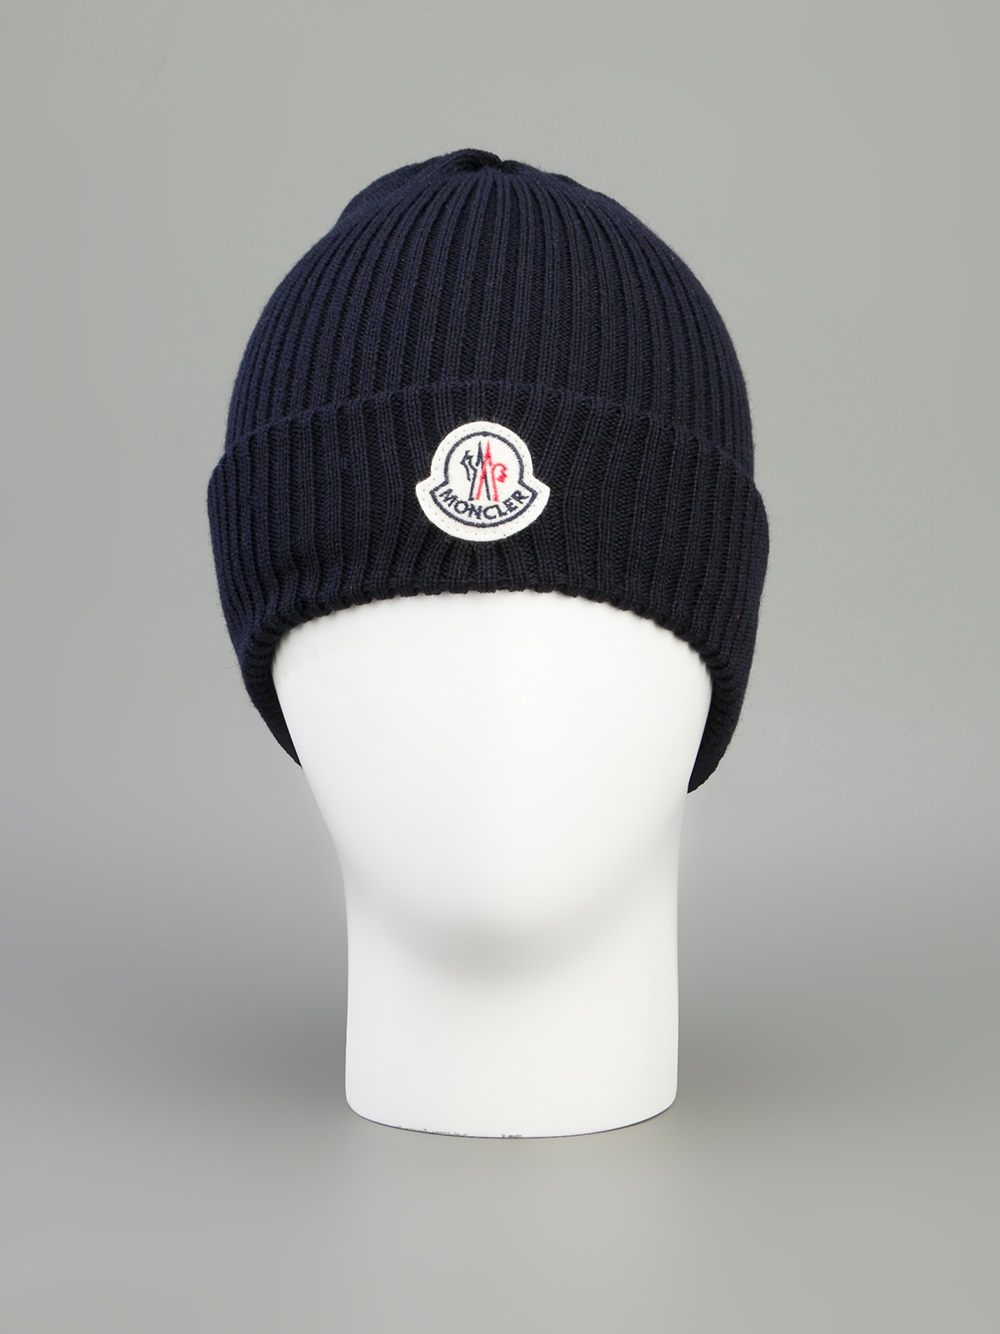 Lyst - Moncler Branded Beanie Hat in Blue for Men 9db15992eec